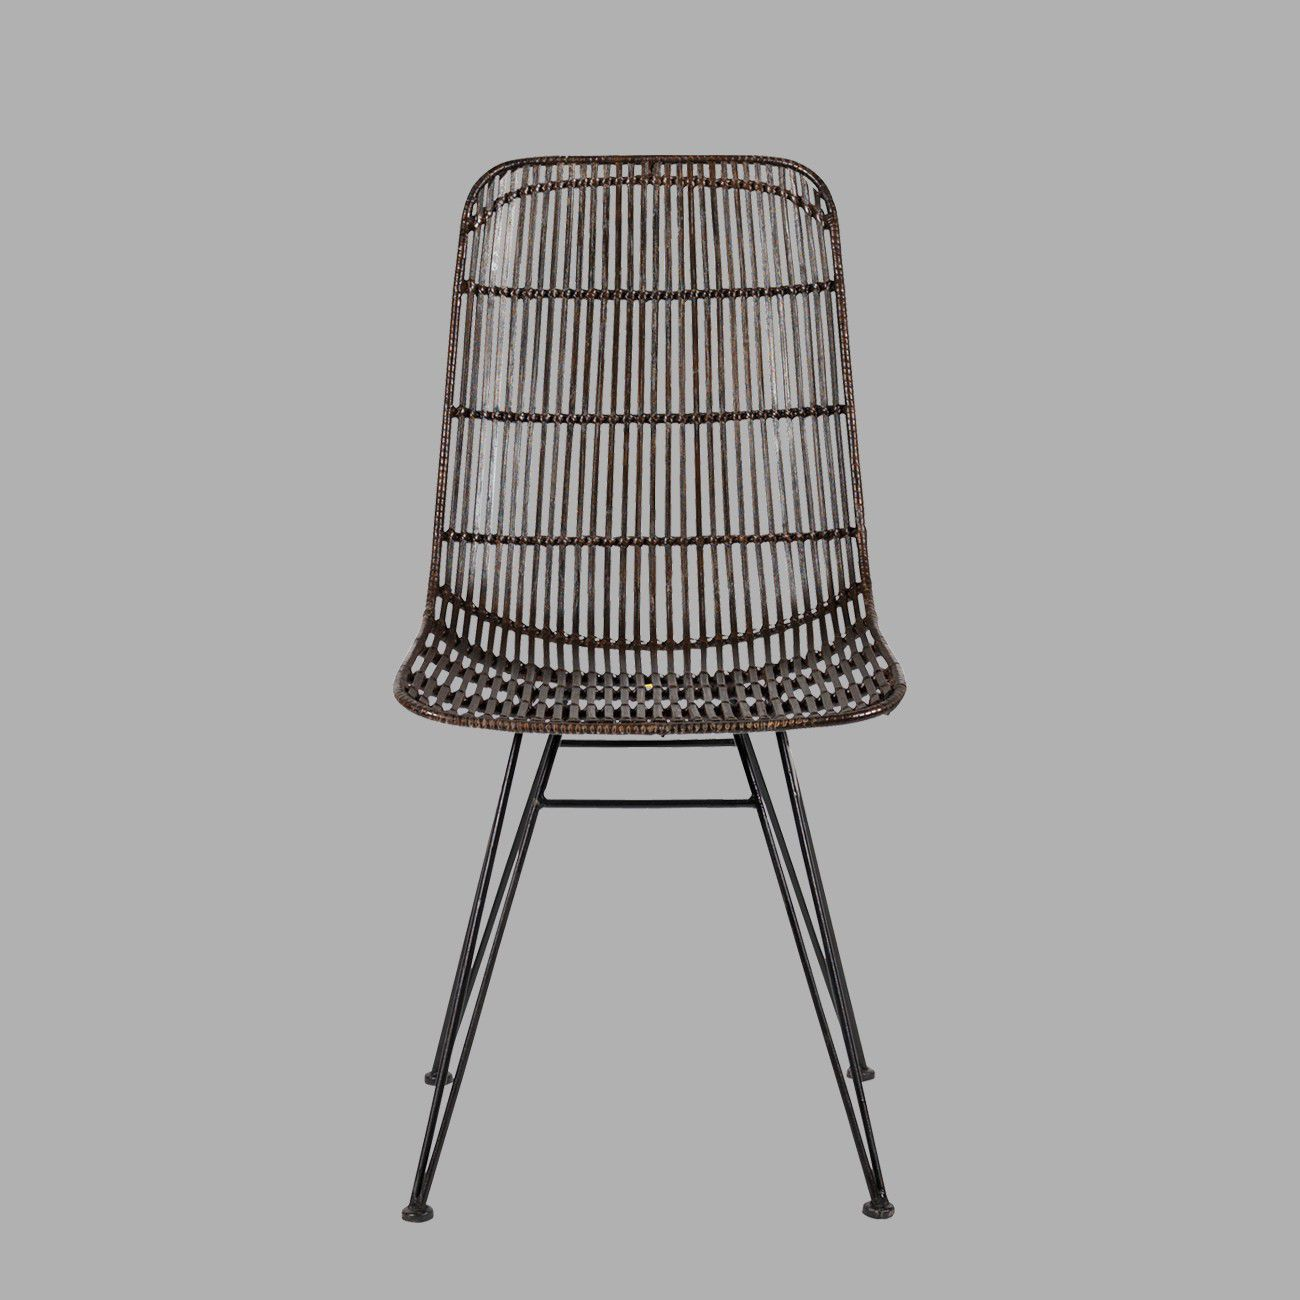 contemporary chair  rattan  metal siam pm blanc d'ivoire . contemporary chair  rattan  metal  siam pm  blanc d'ivoire